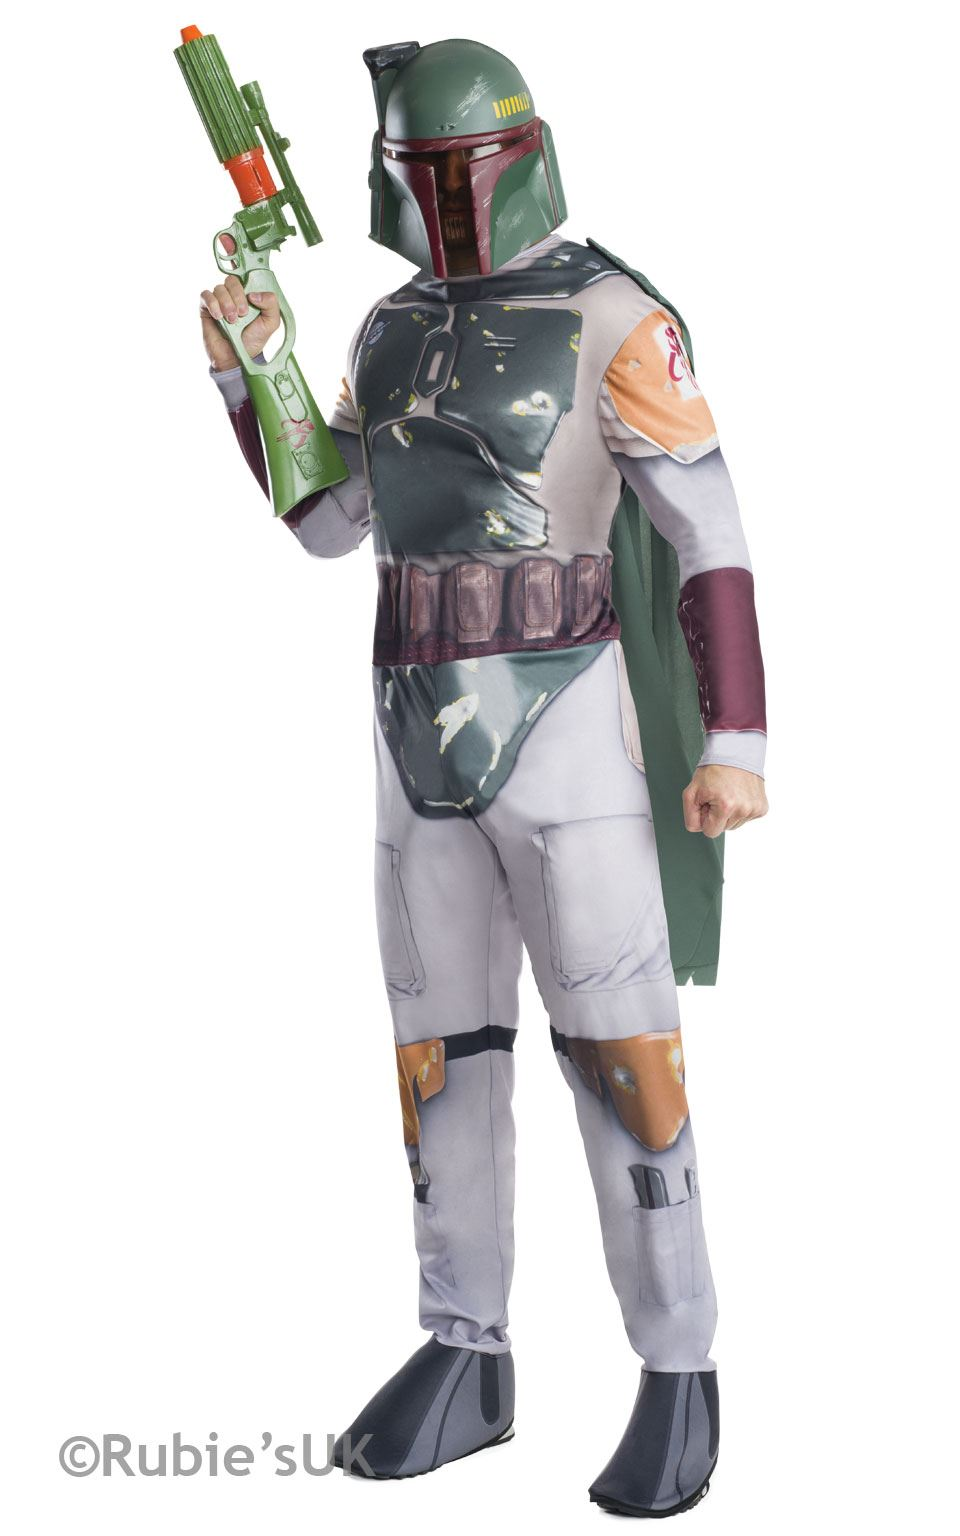 Men's Disney Star Wars Boba Fett Fancy Dress Costume